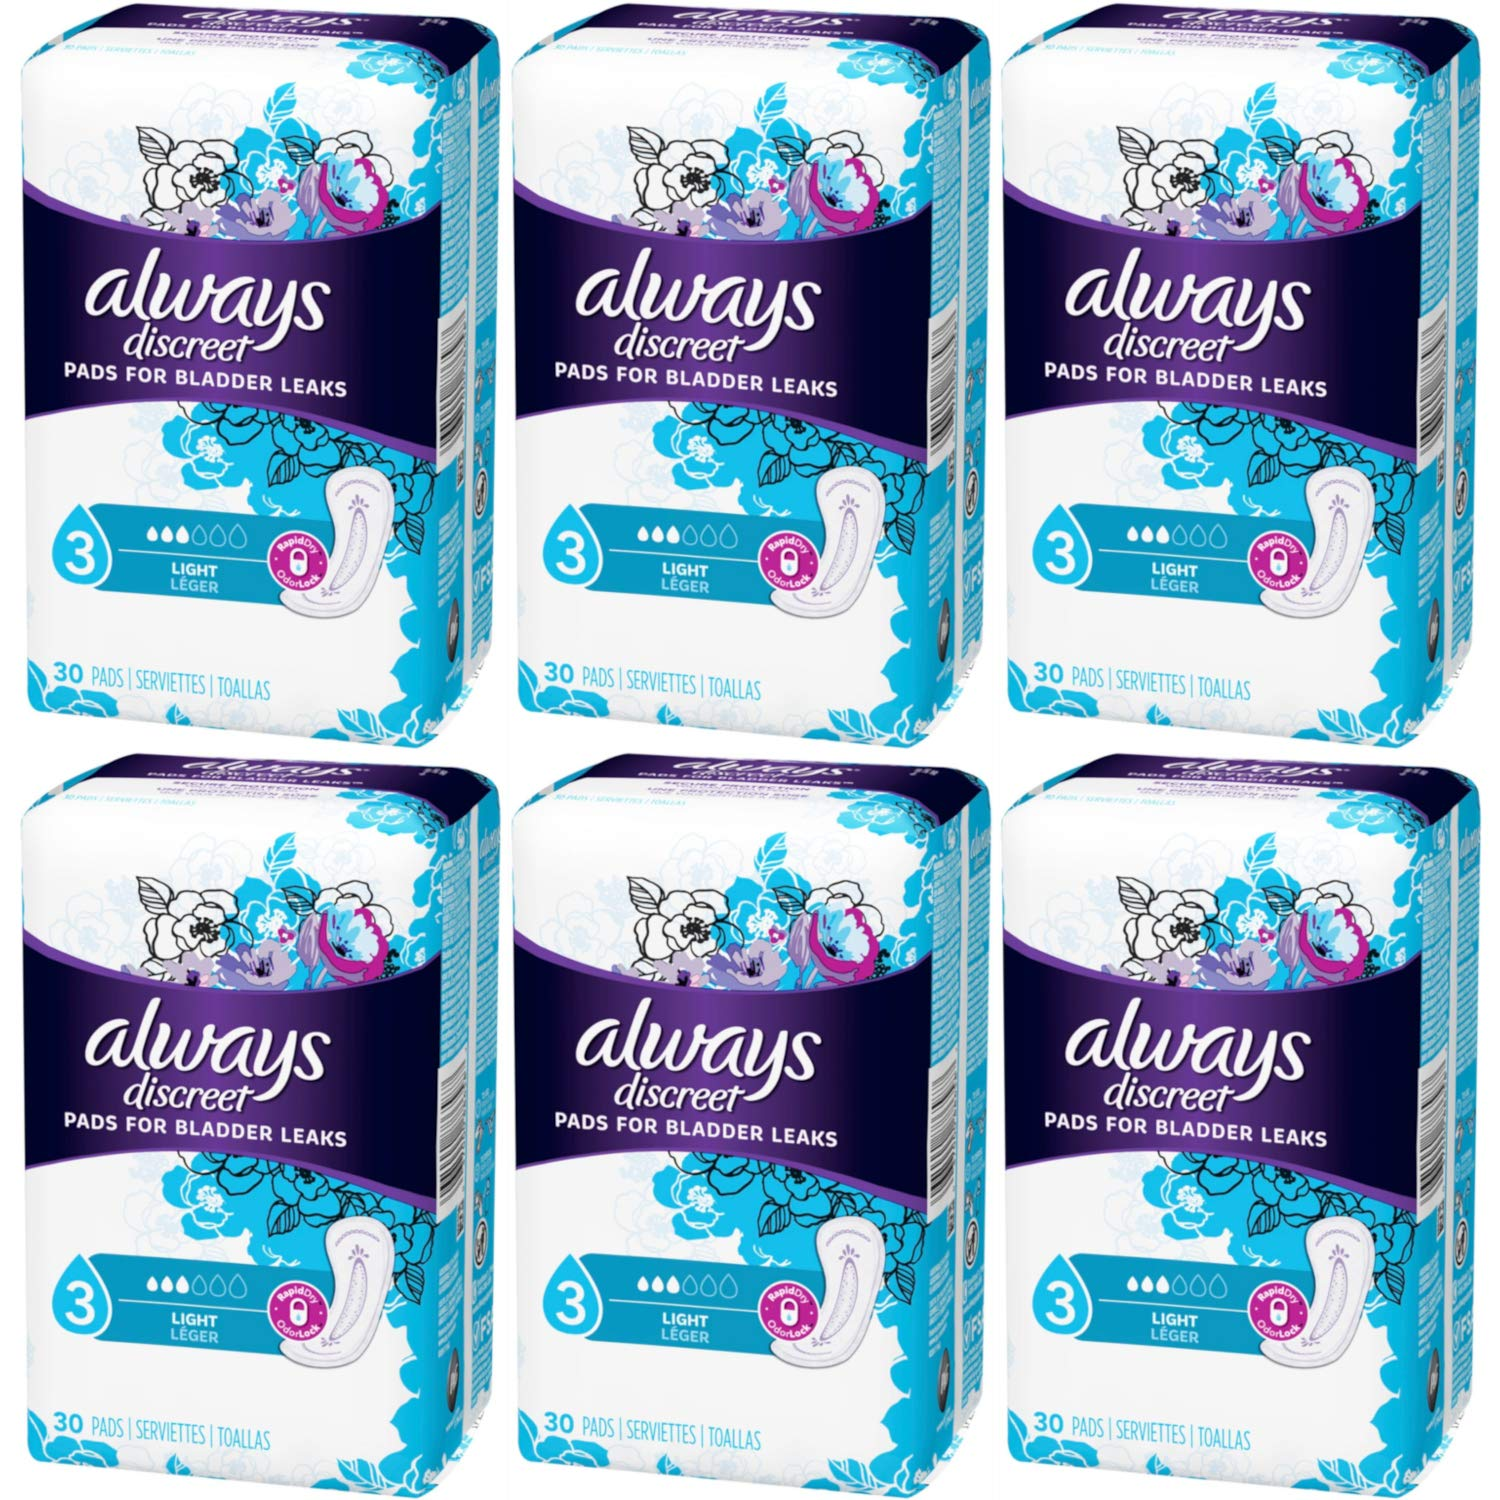 Amazon.com: Always Discreet, Incontinence Light Pads, 3 Drops, 30 Pads each (Value Pack of 6): Health & Personal Care